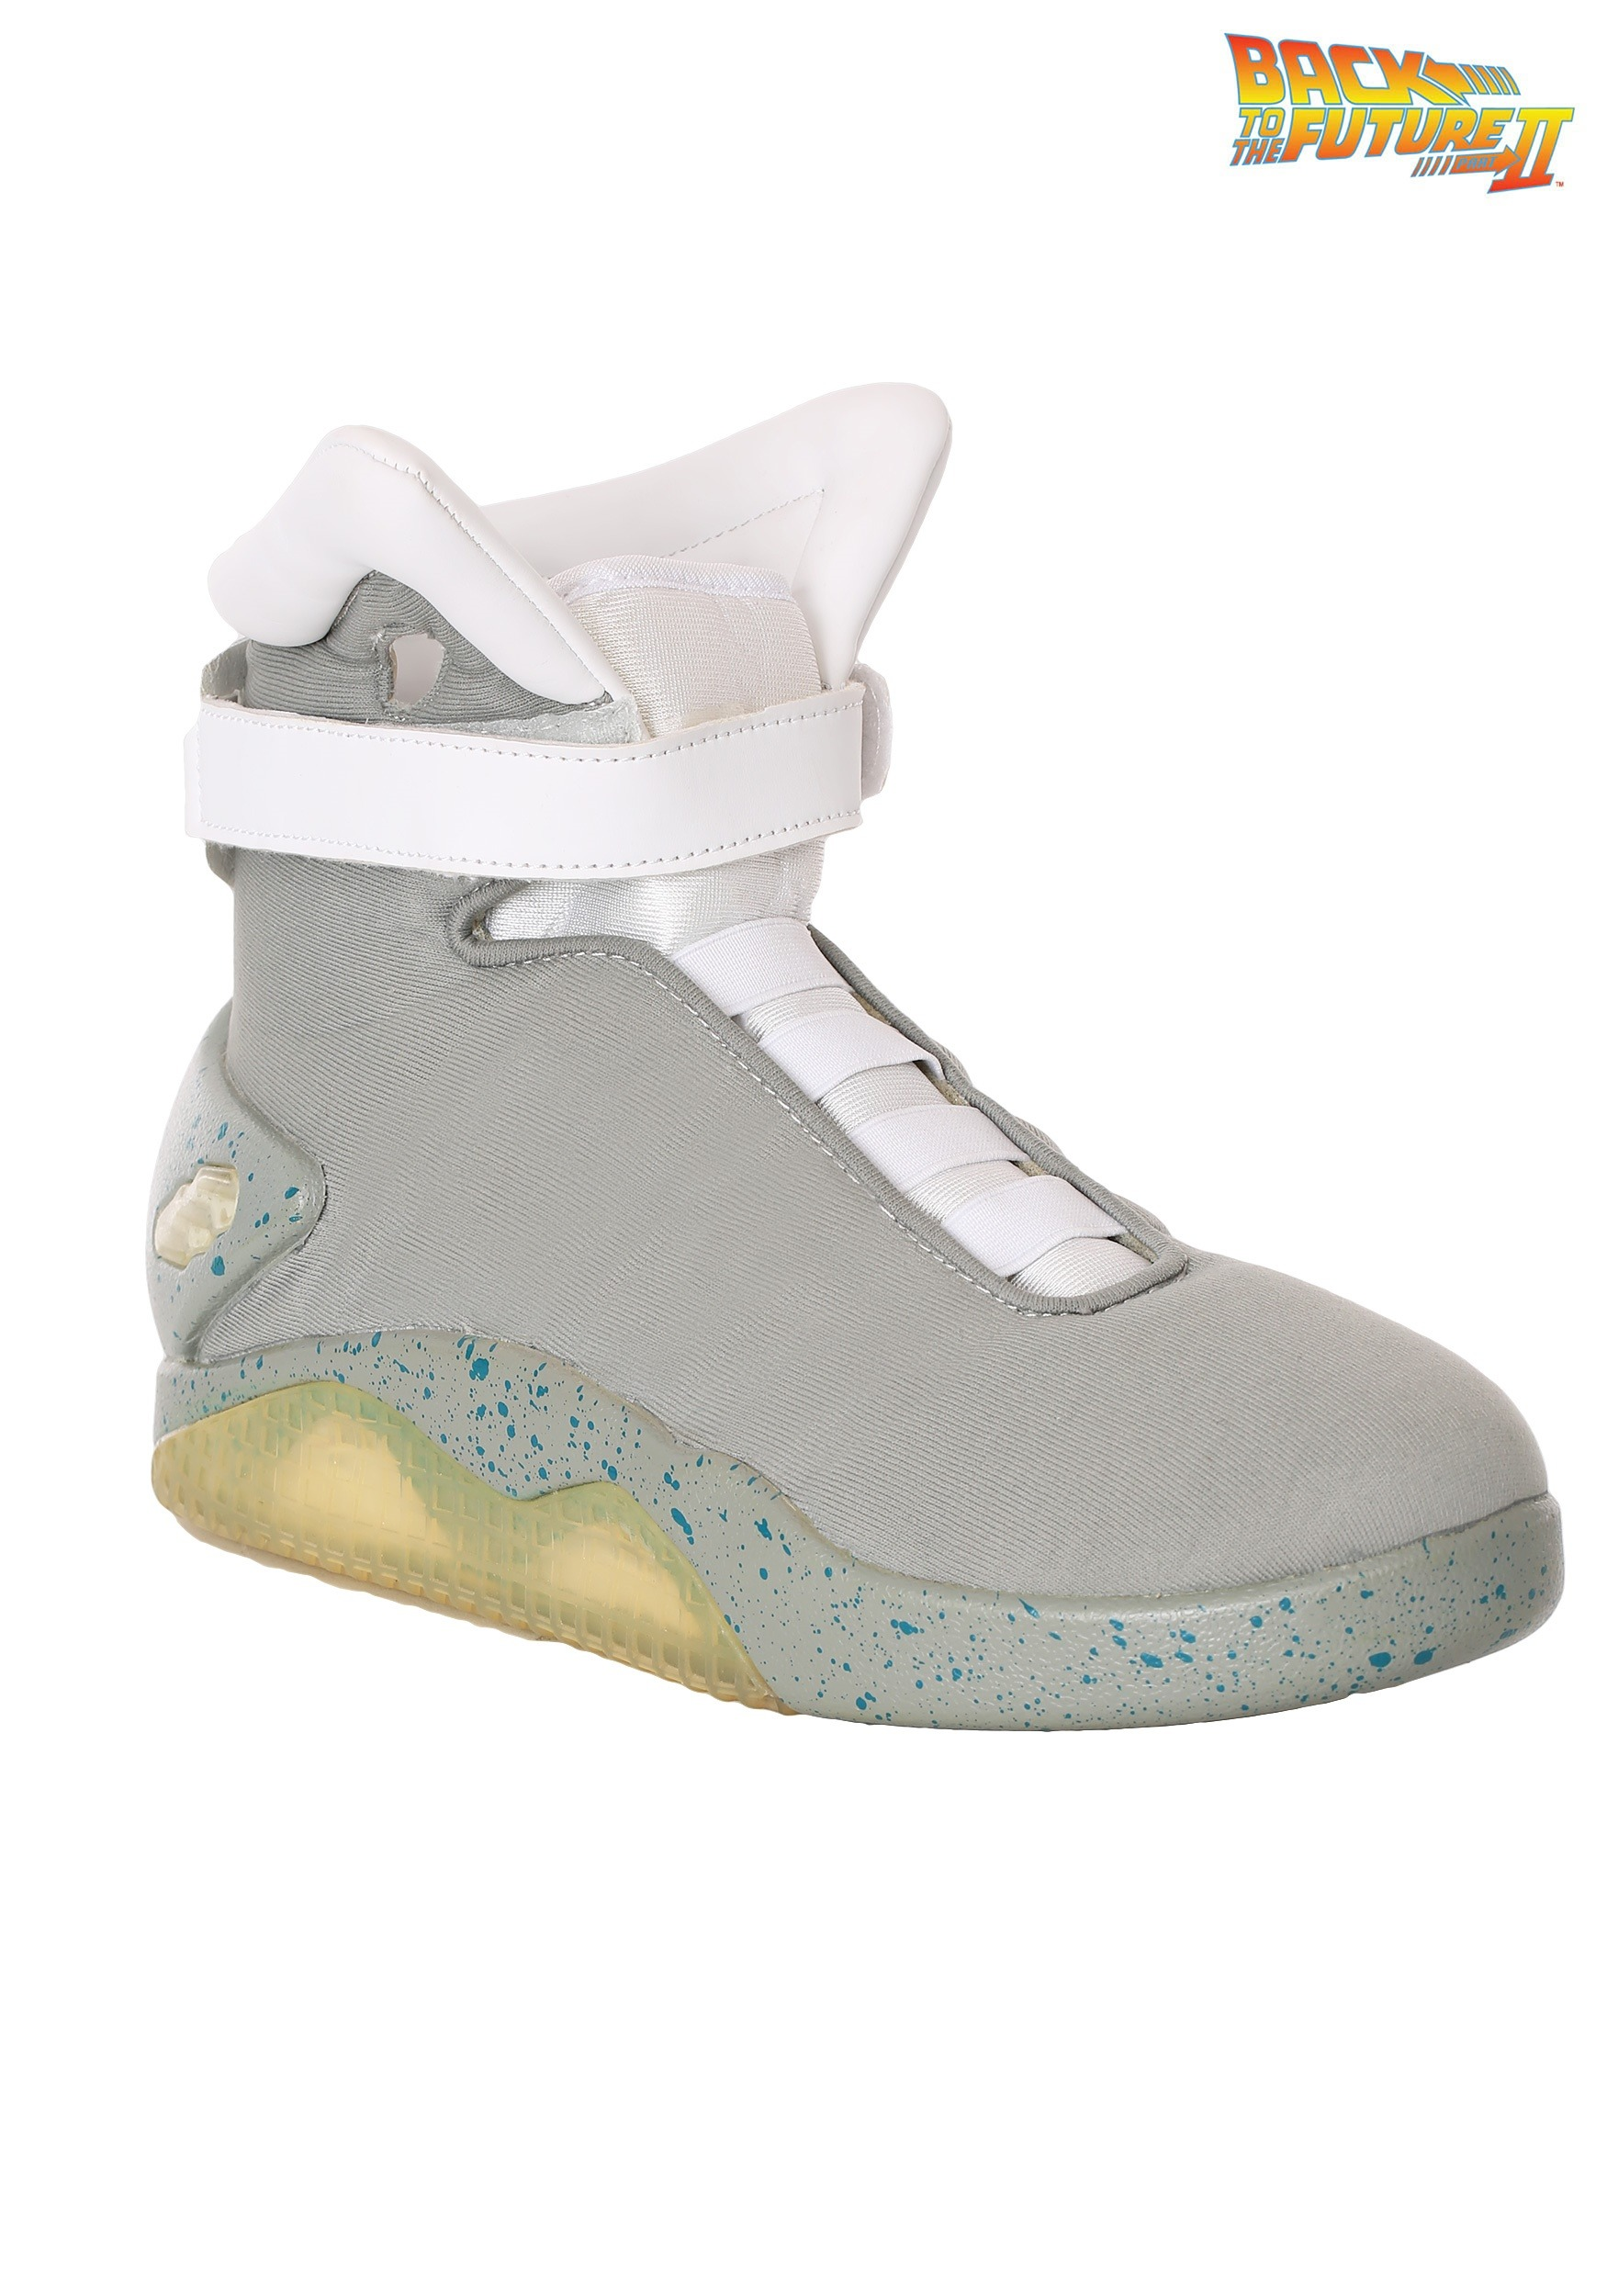 Back To The Future Shoes For Sale Price